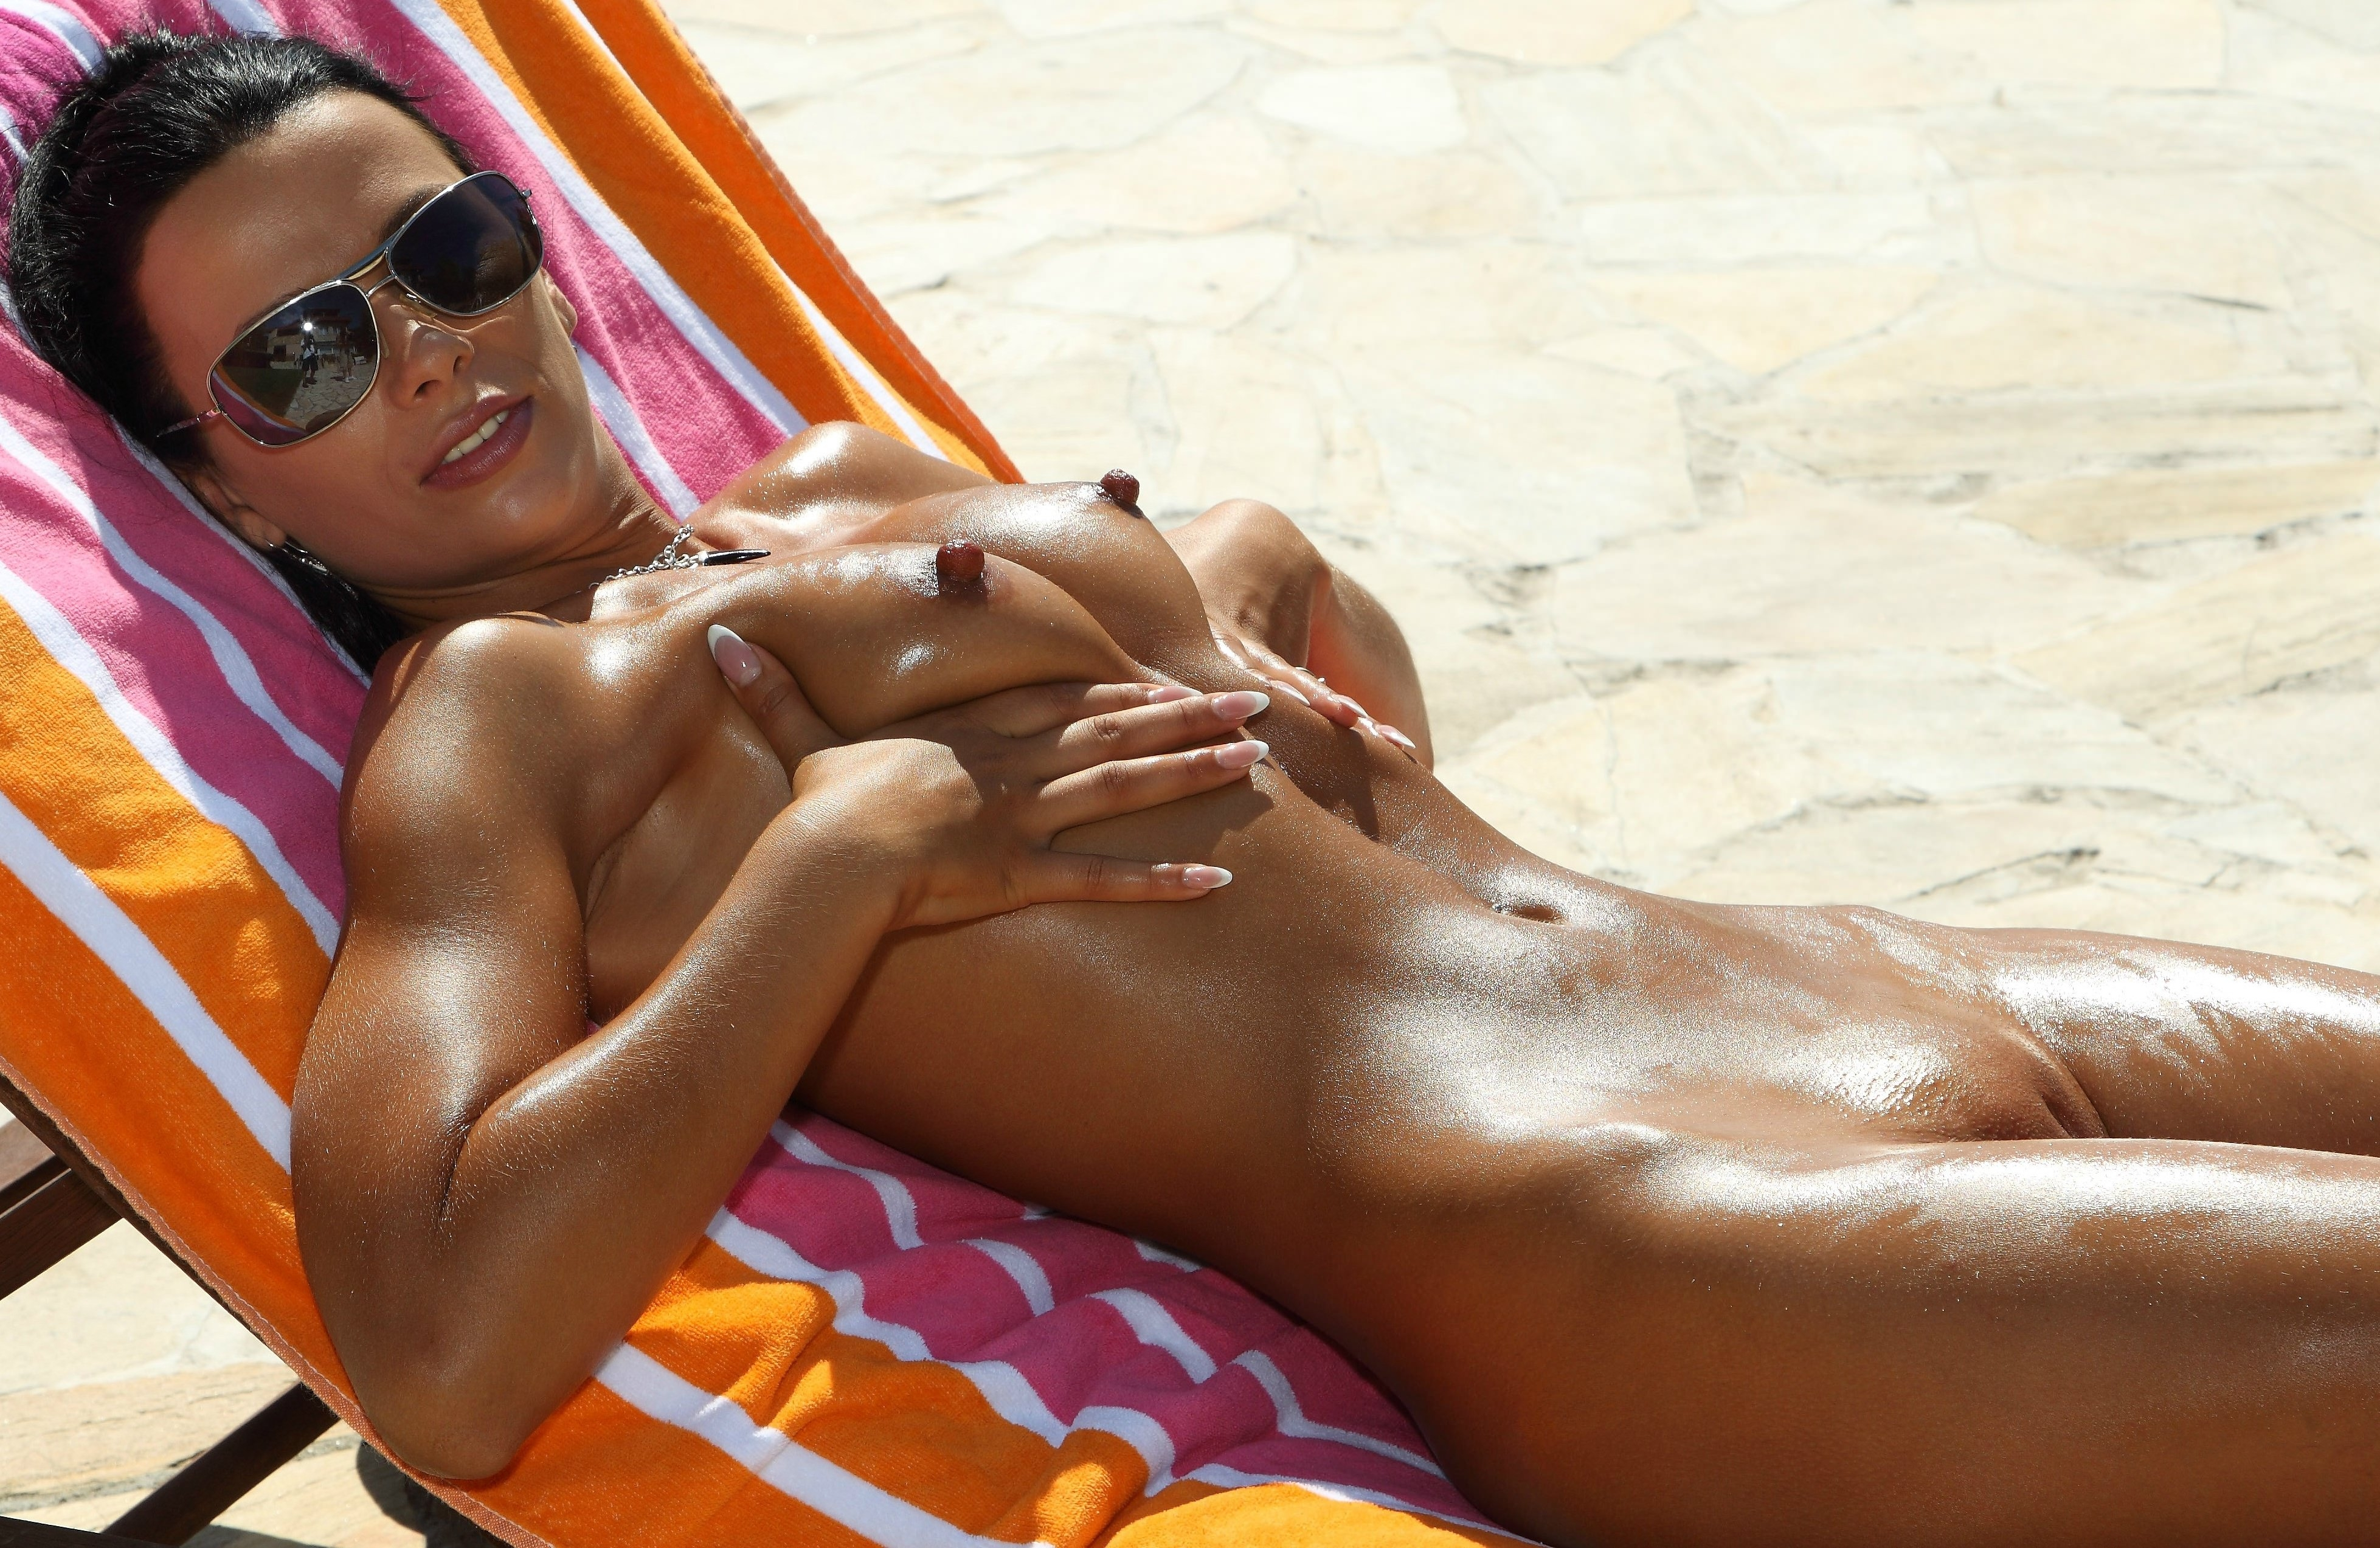 Girls naked in the sun